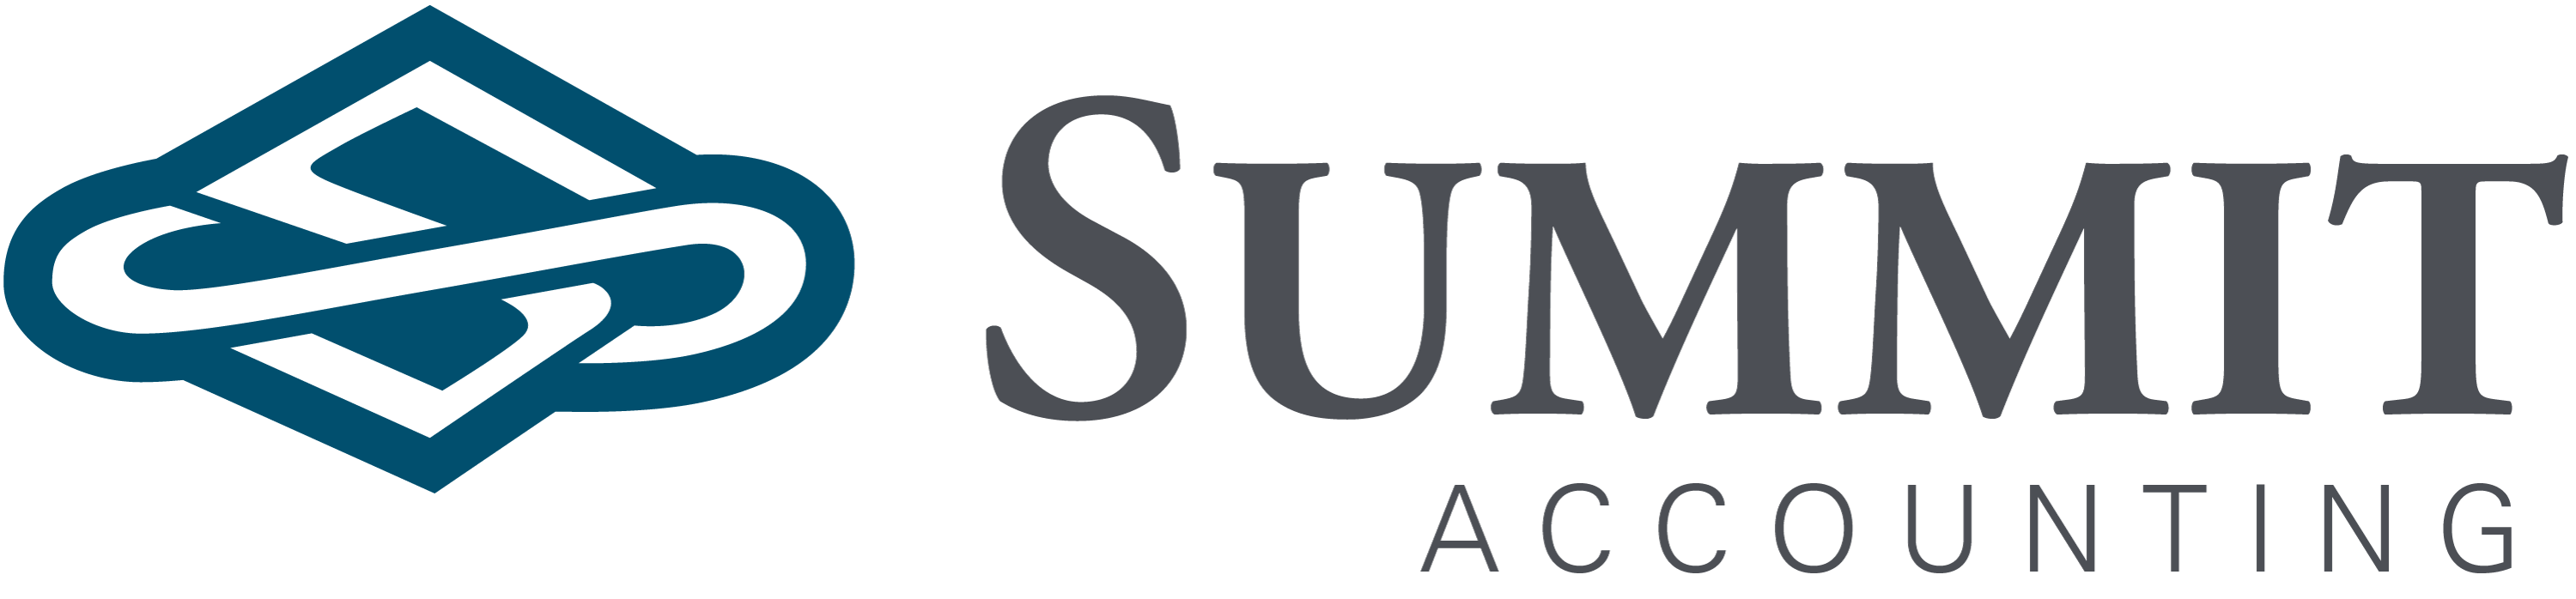 Summit Accounting